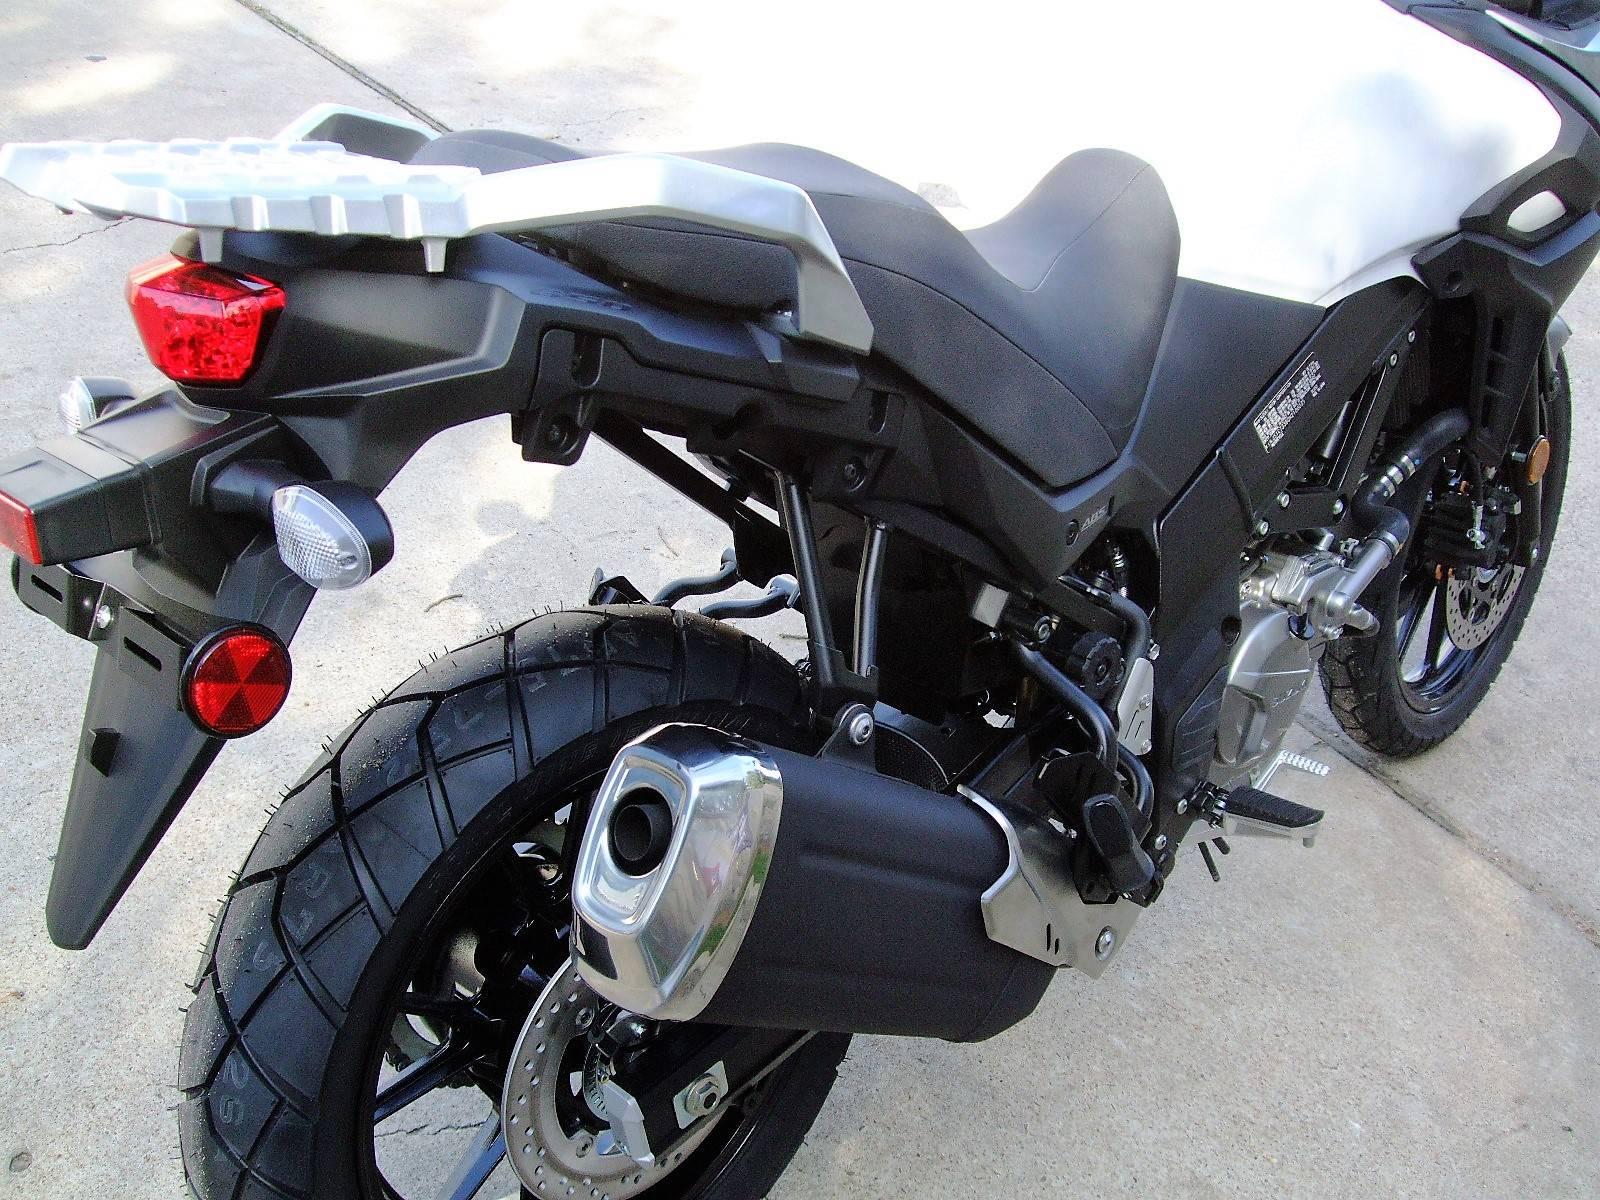 2017 Suzuki V-Strom 650 in Katy, Texas